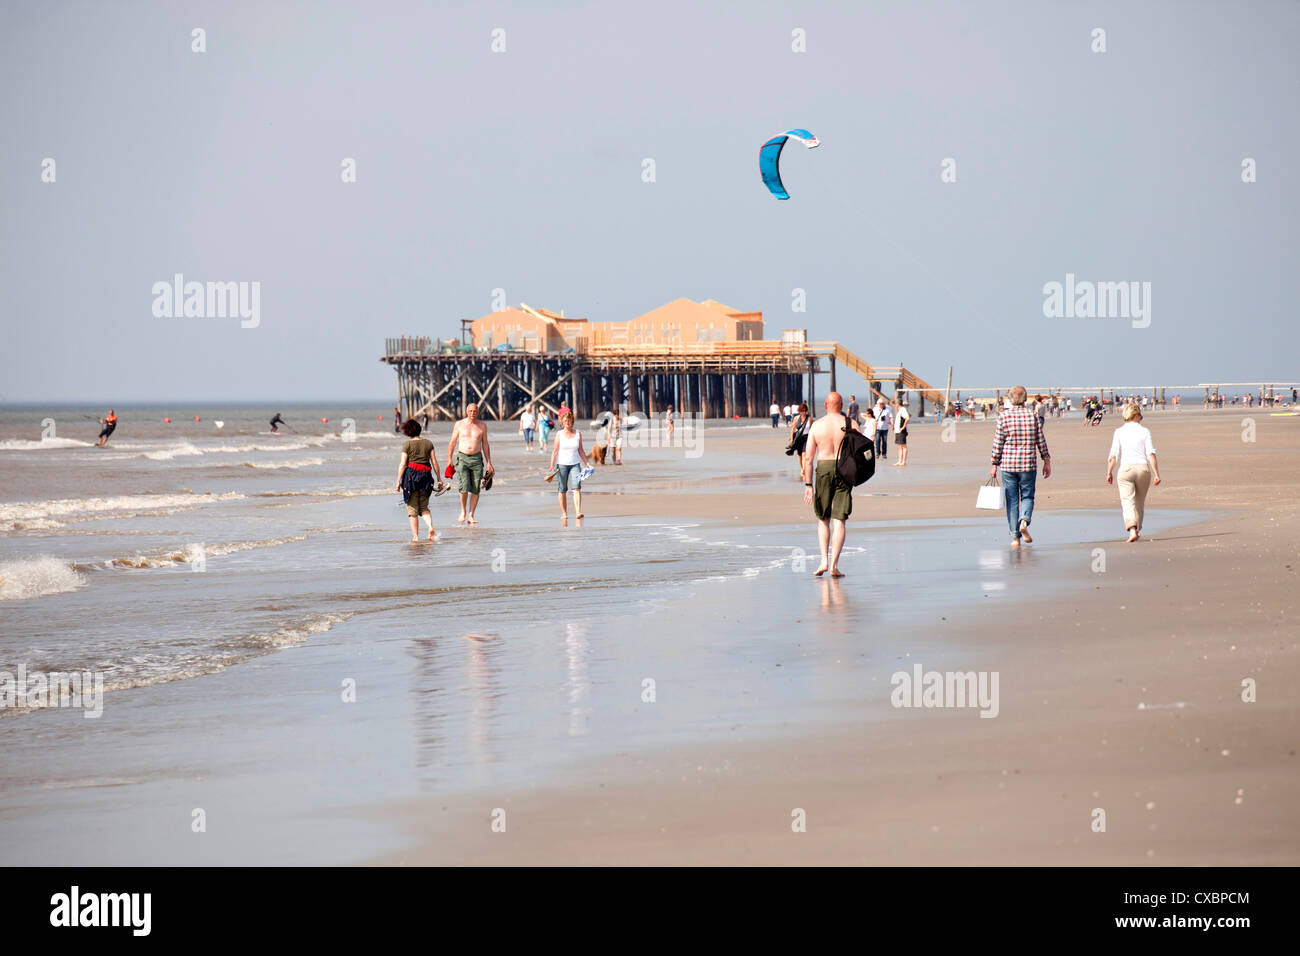 sandy beach of St. Peter-Ording, district of North Friesland, Schleswig-Holstein, Germany, Europe - Stock Image